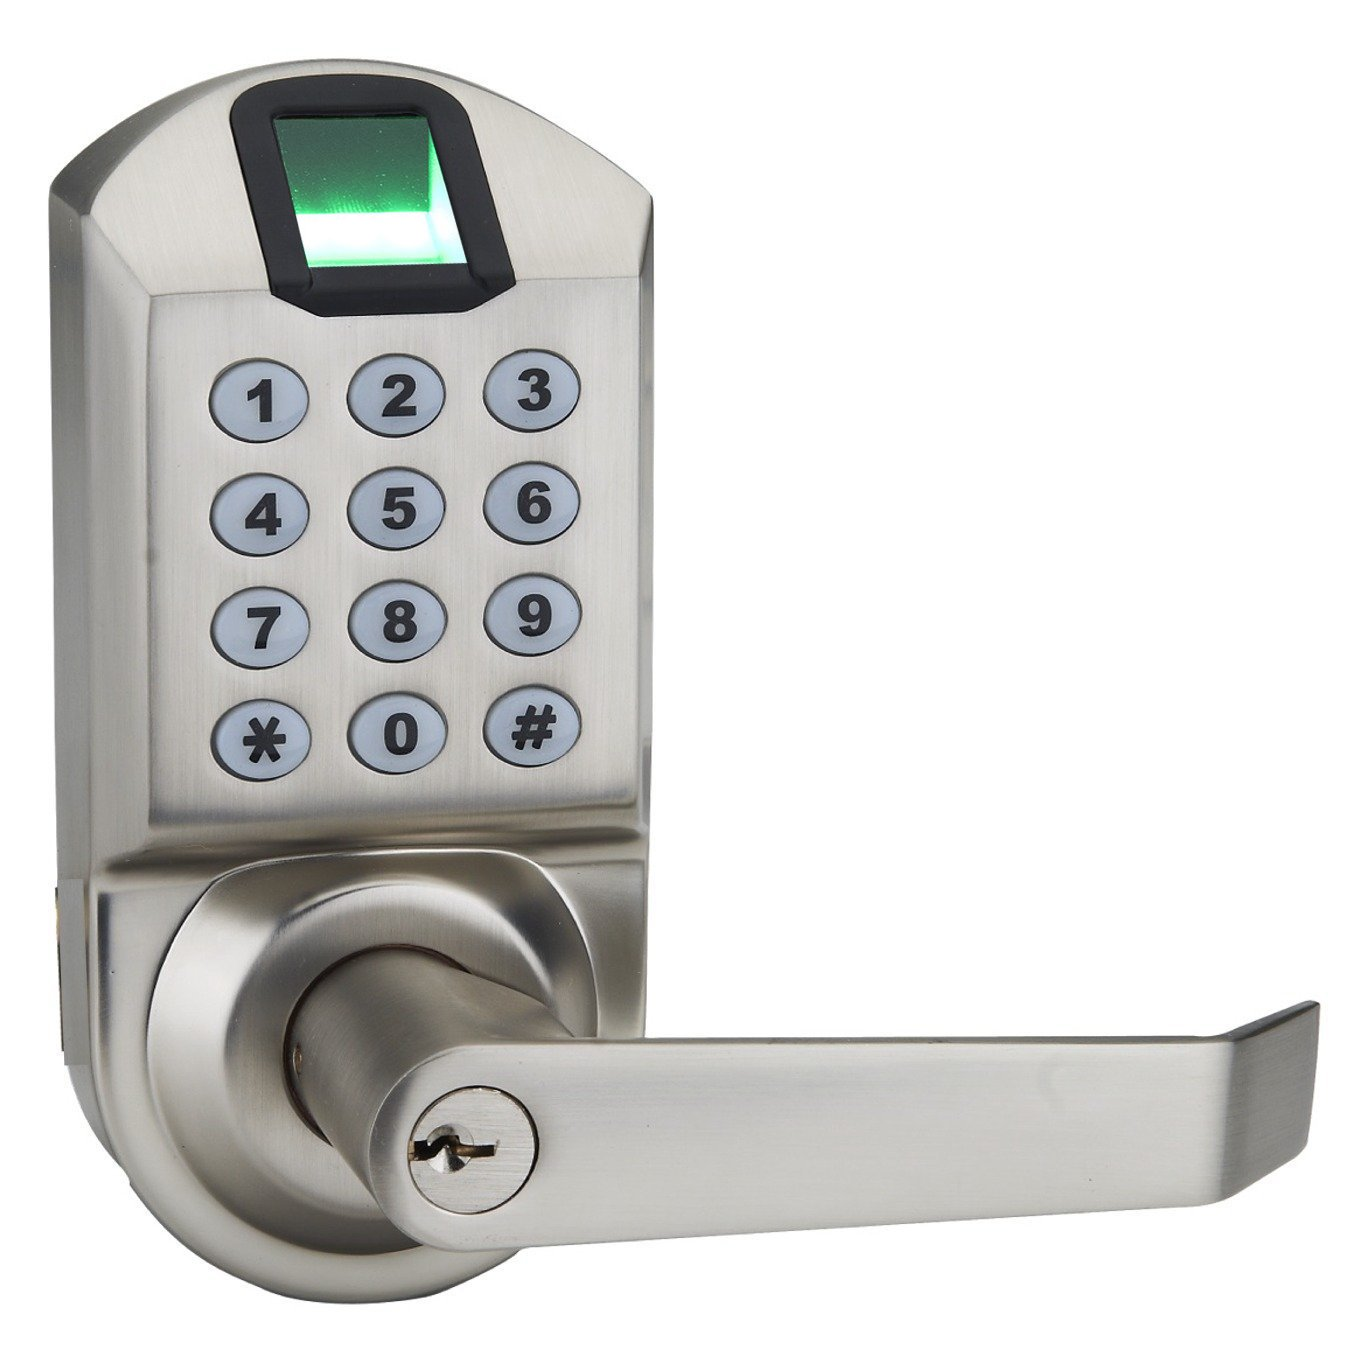 Fingerprint Door Lock, ARDWOLF A1 Keyless Biometric Keypad Lock with Reversible Lever and Automatic Locking, No Drills Needed - Satin Nickel, Provide with USA Local Repair Service by Ardwolf